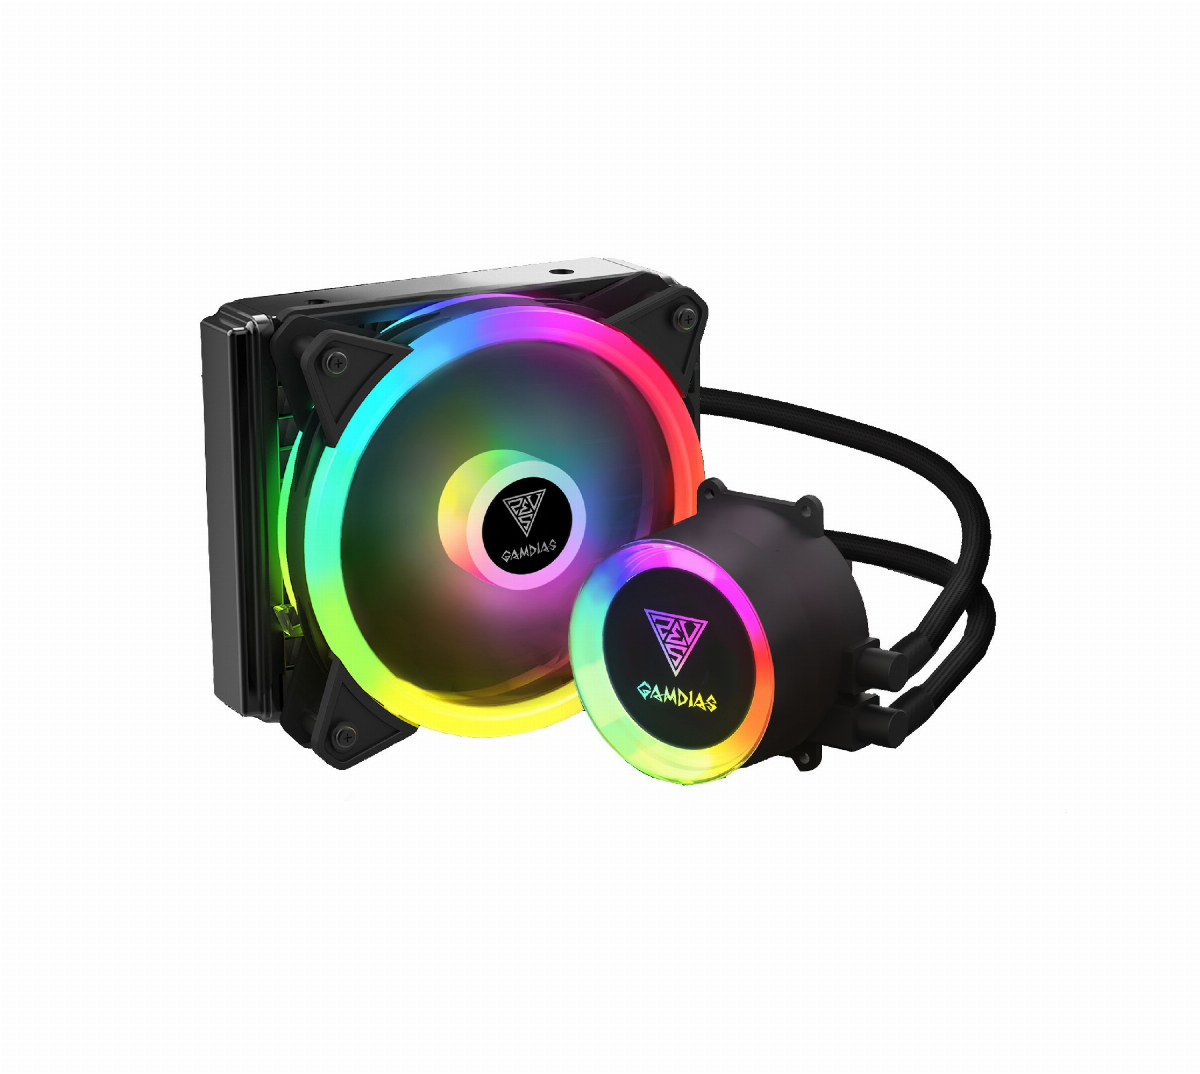 Охладител за процесор Gamdias CHIONE E2-120 LITE 120mm aRGB Water Cooling